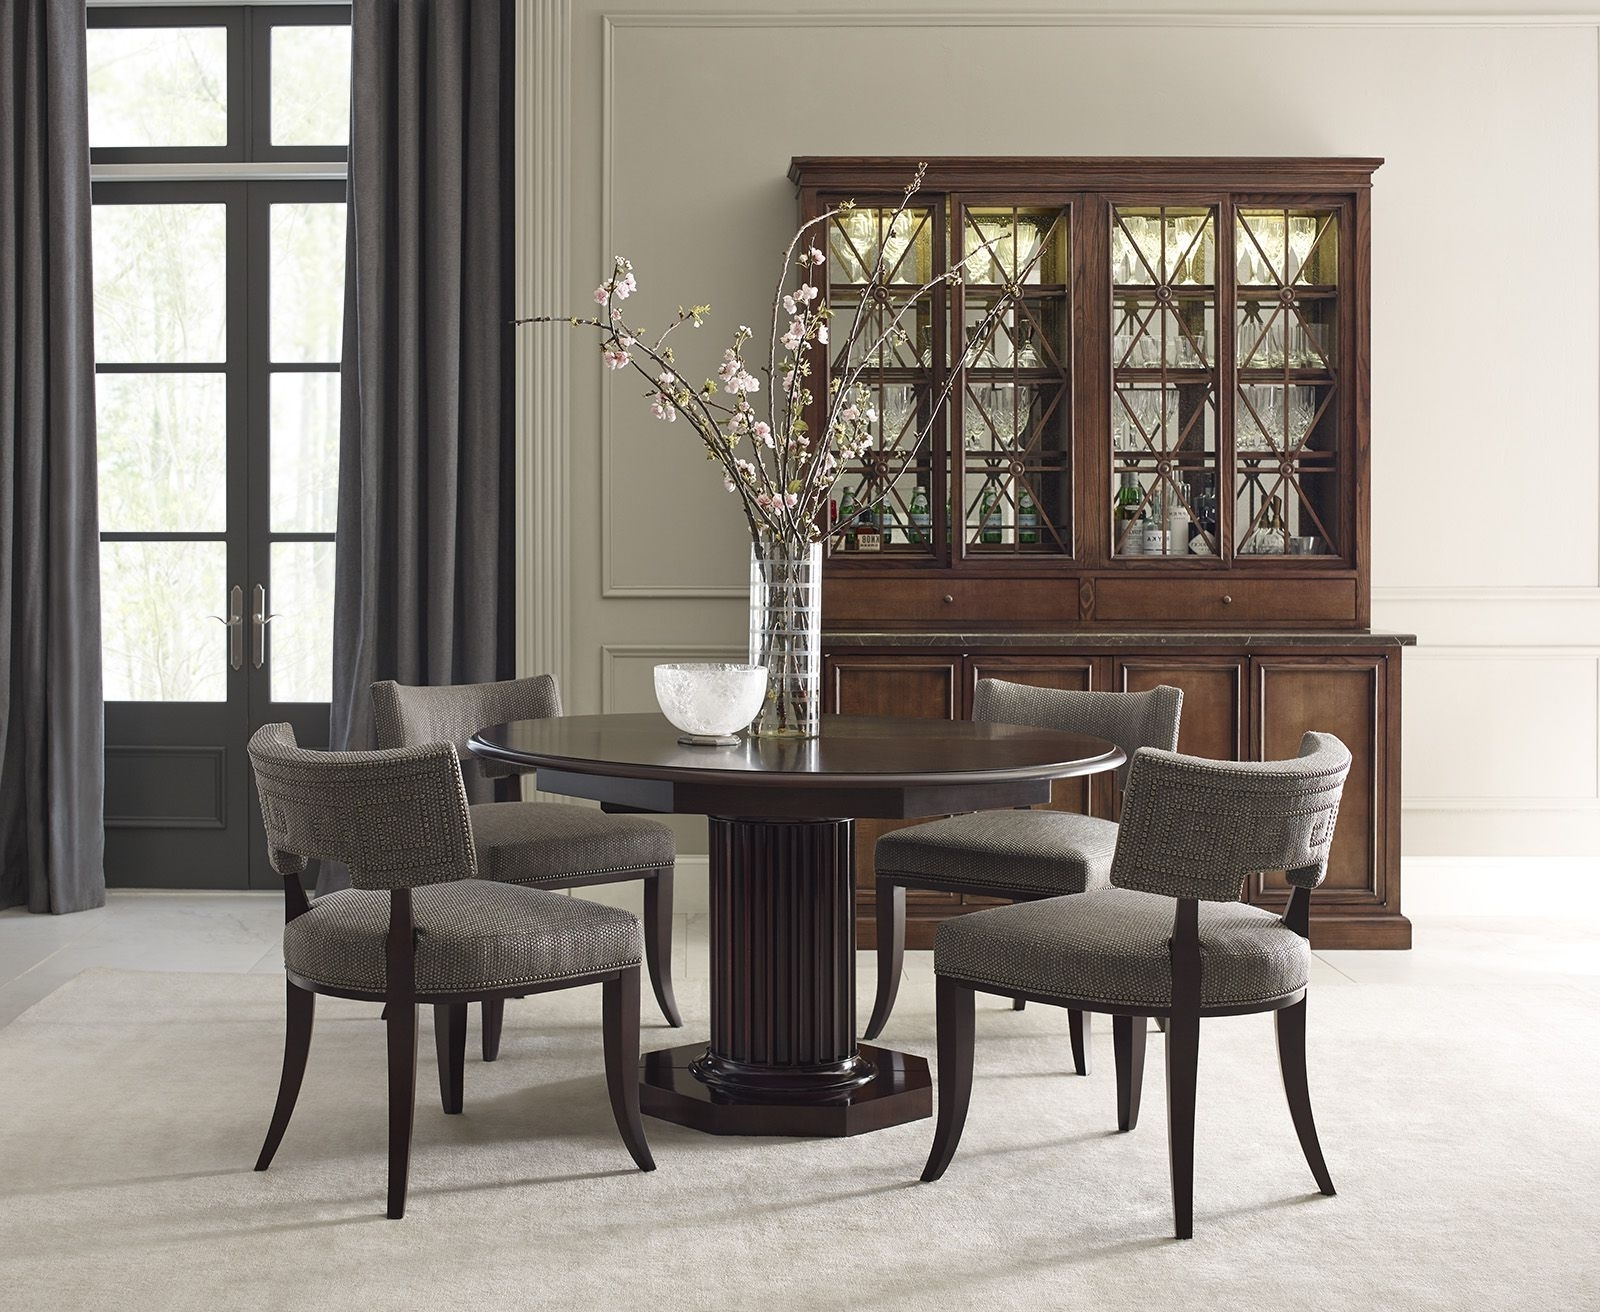 The Saint Giorgio Dining Chairs, Eden Roc Dining Table, Rock Crystal Inside Best And Newest Crystal Dining Tables (View 24 of 25)